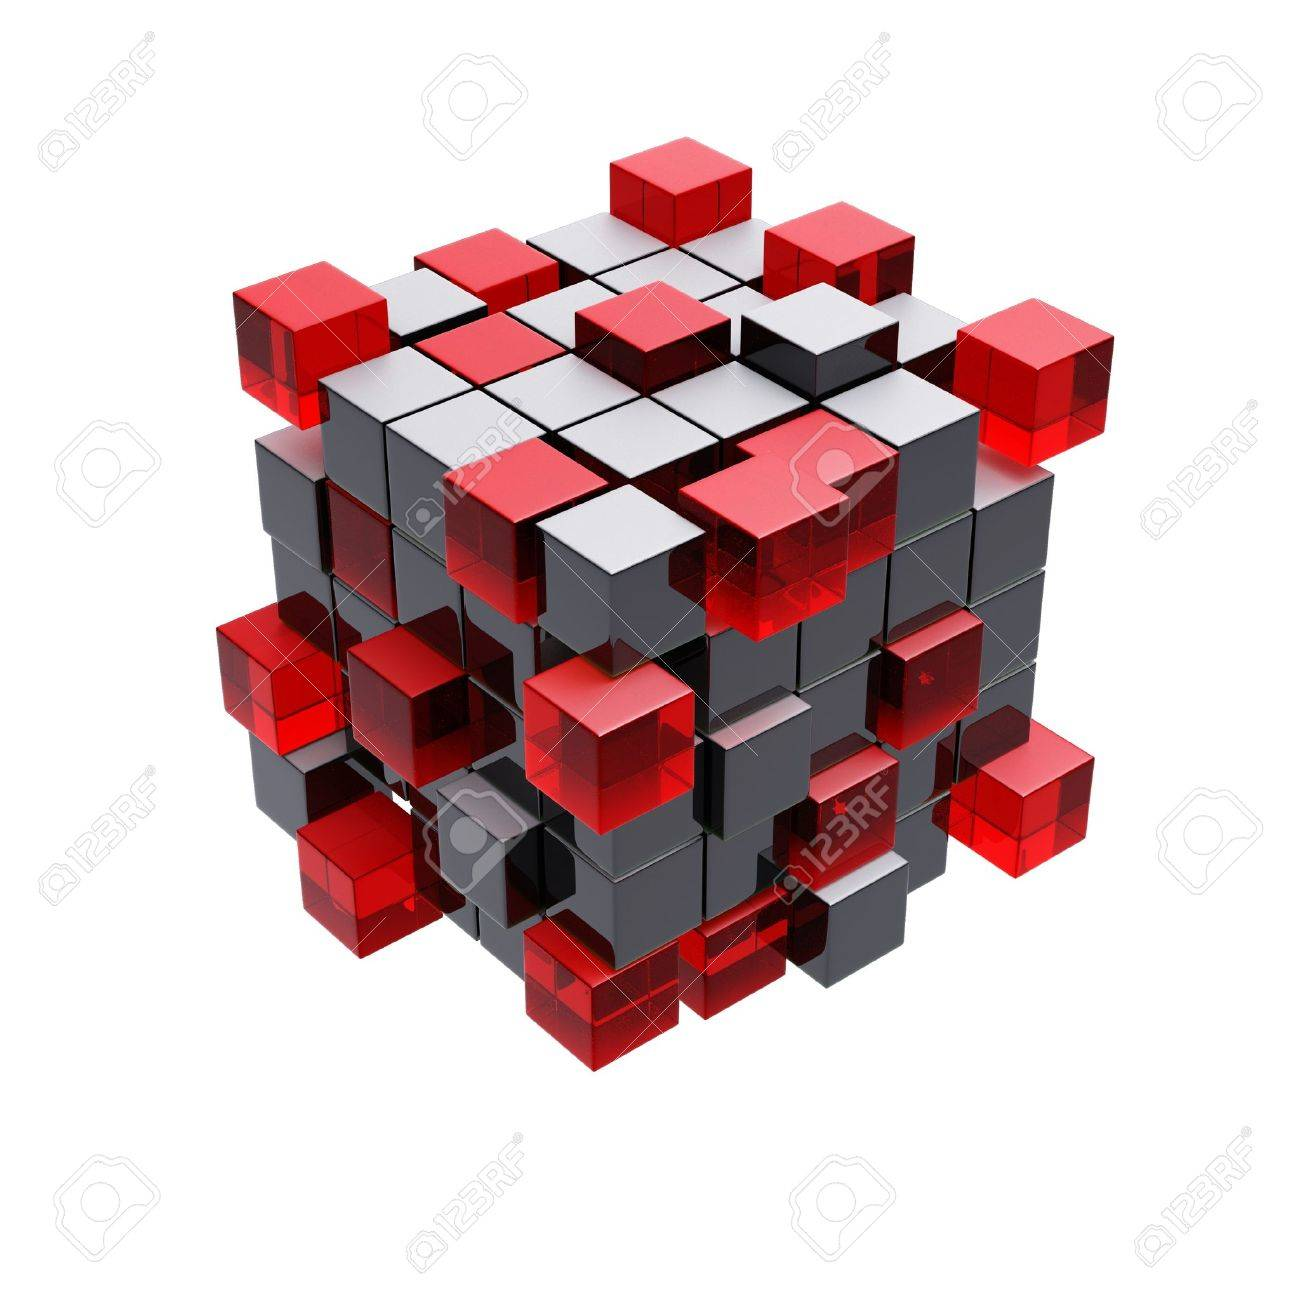 Cubes construction isolated on white 3d model - 12026949